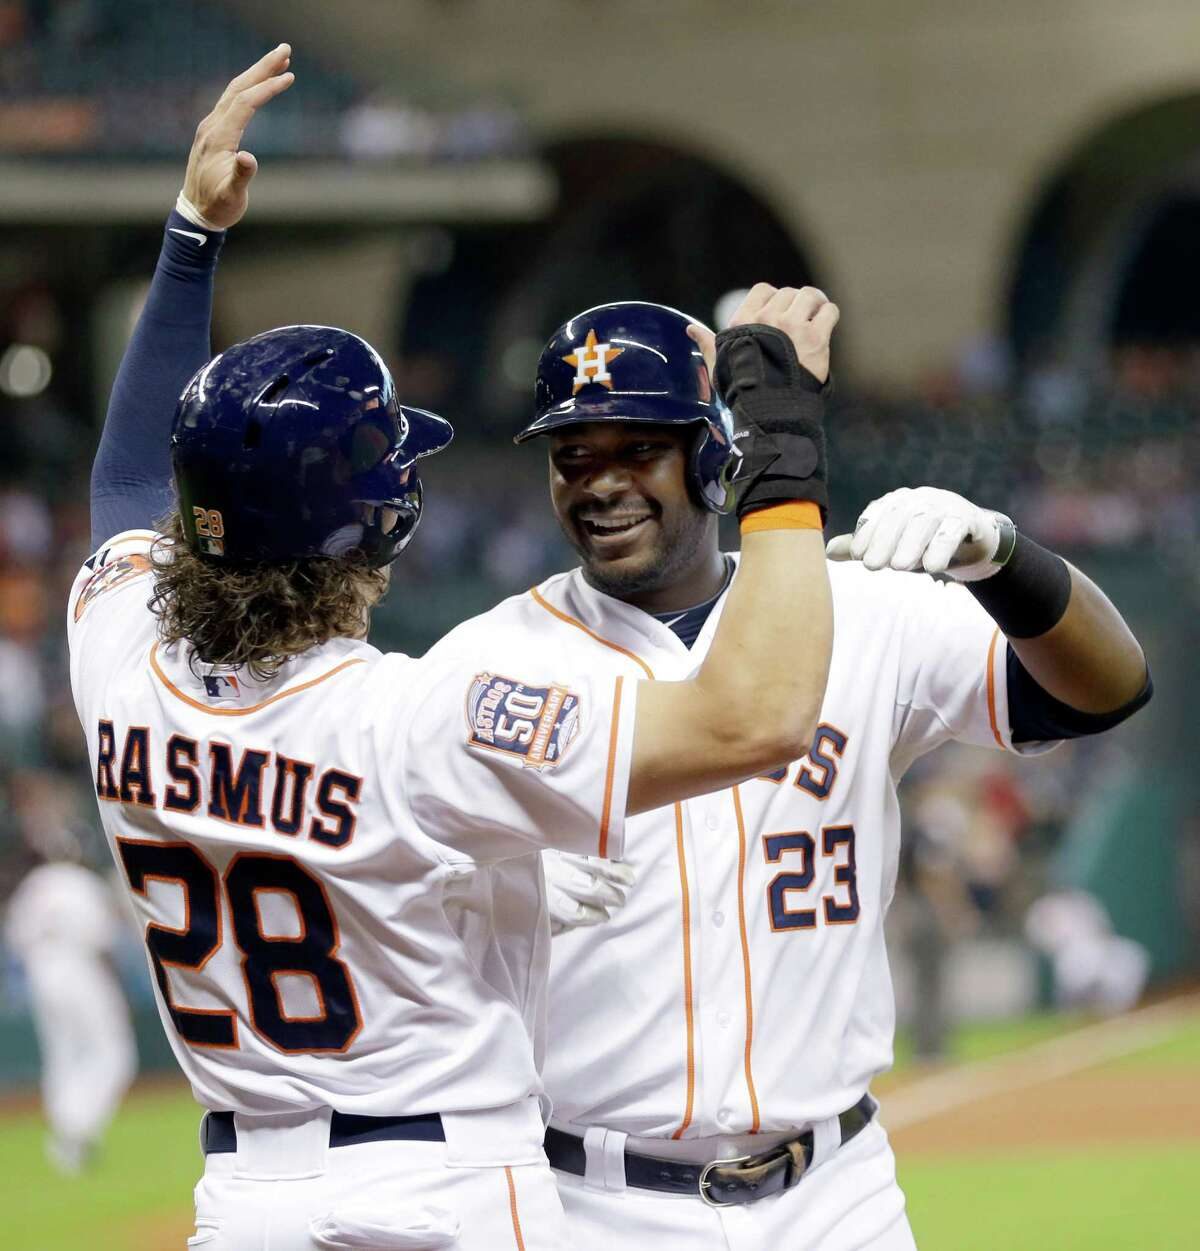 Houston Astros' Chris Carter (23) celebrates his two-run home run with Colby Rasmus (28) during the second inning of a baseball game against the Oakland Athletics on Tuesday, May 19, 2015, in Houston. (AP Photo/David J. Phillip)